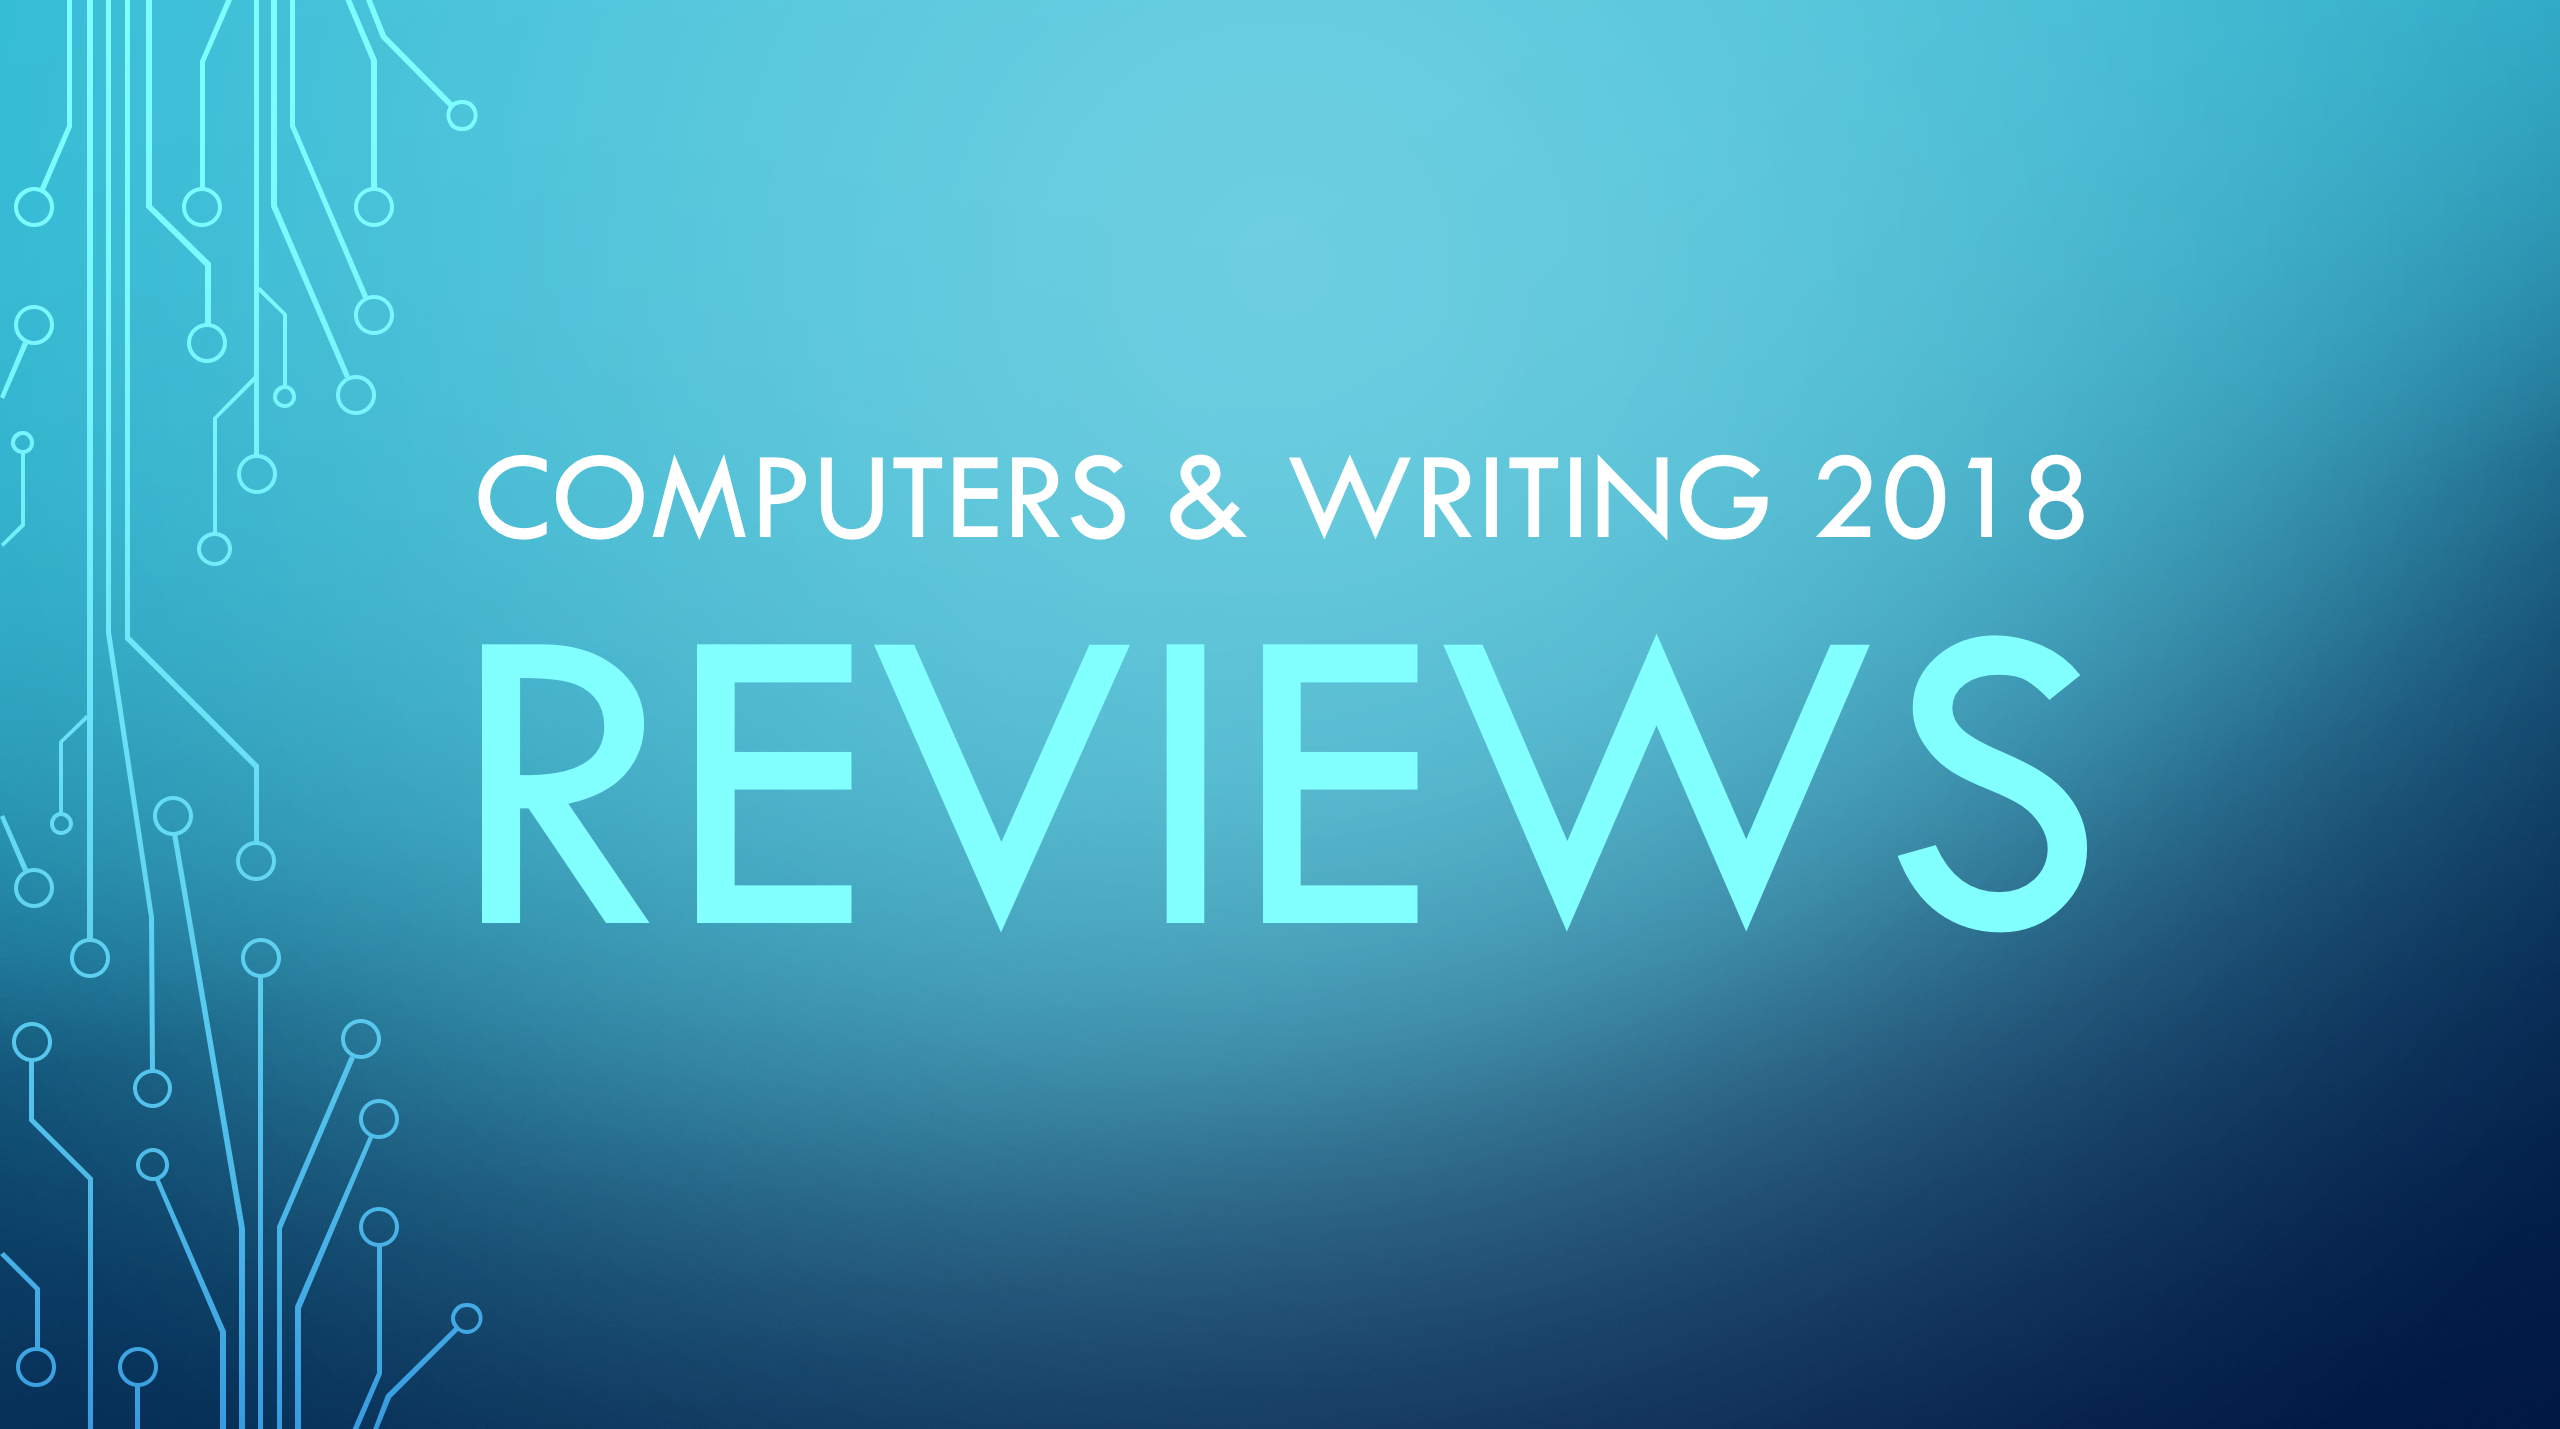 Computers & Writing 2018 reviews banner.